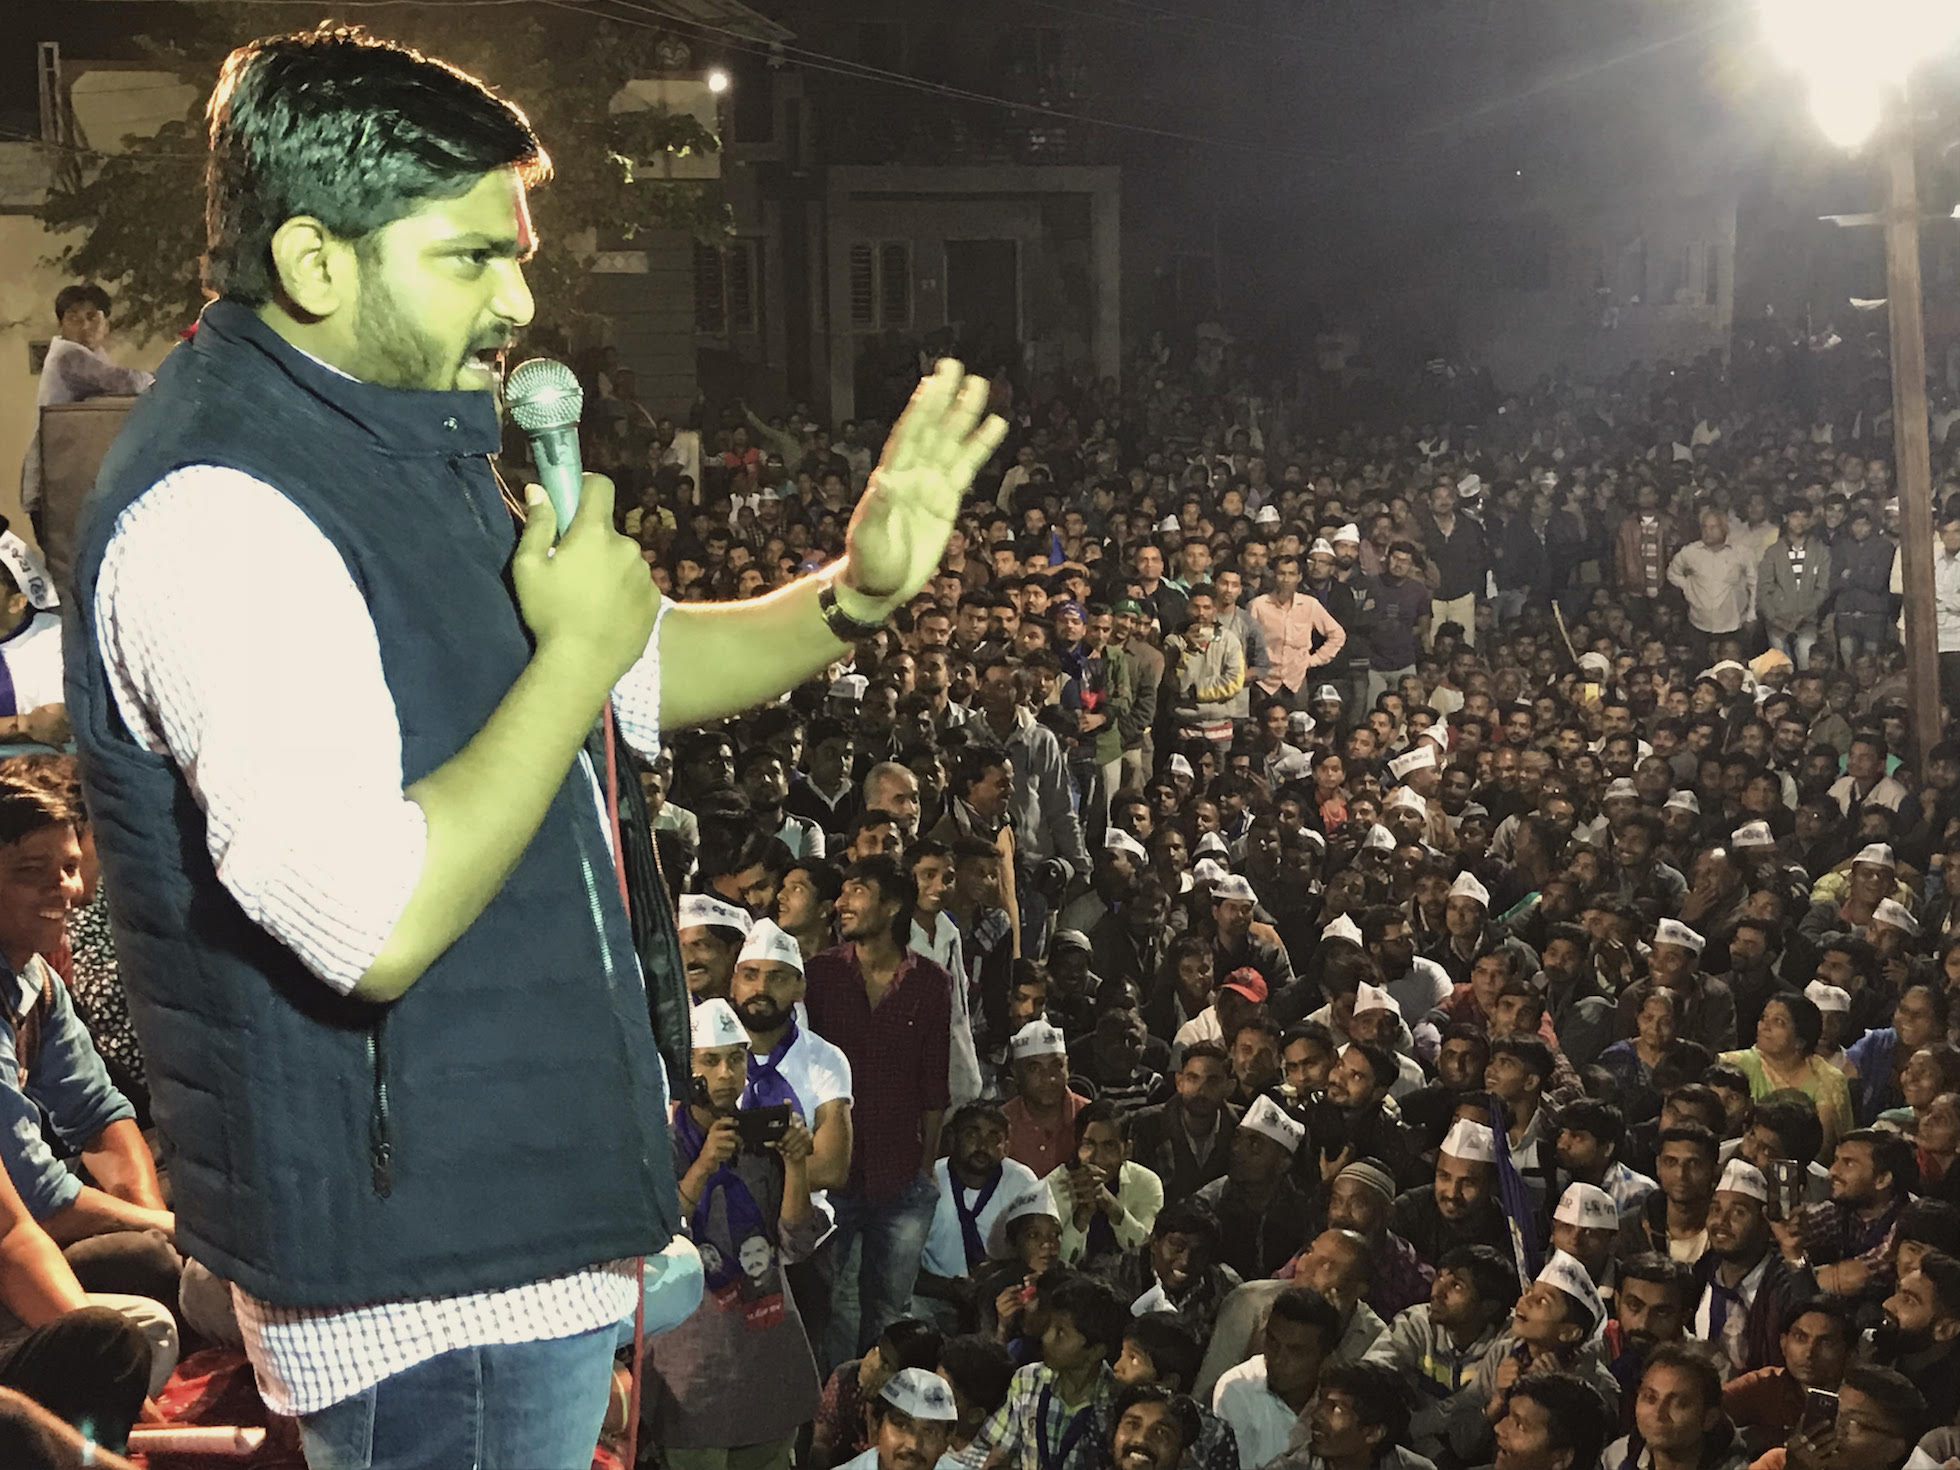 Hardik Patel addressing a gathering in Dholka in Ahmedabad district. Photo credit: Supriya Sharma